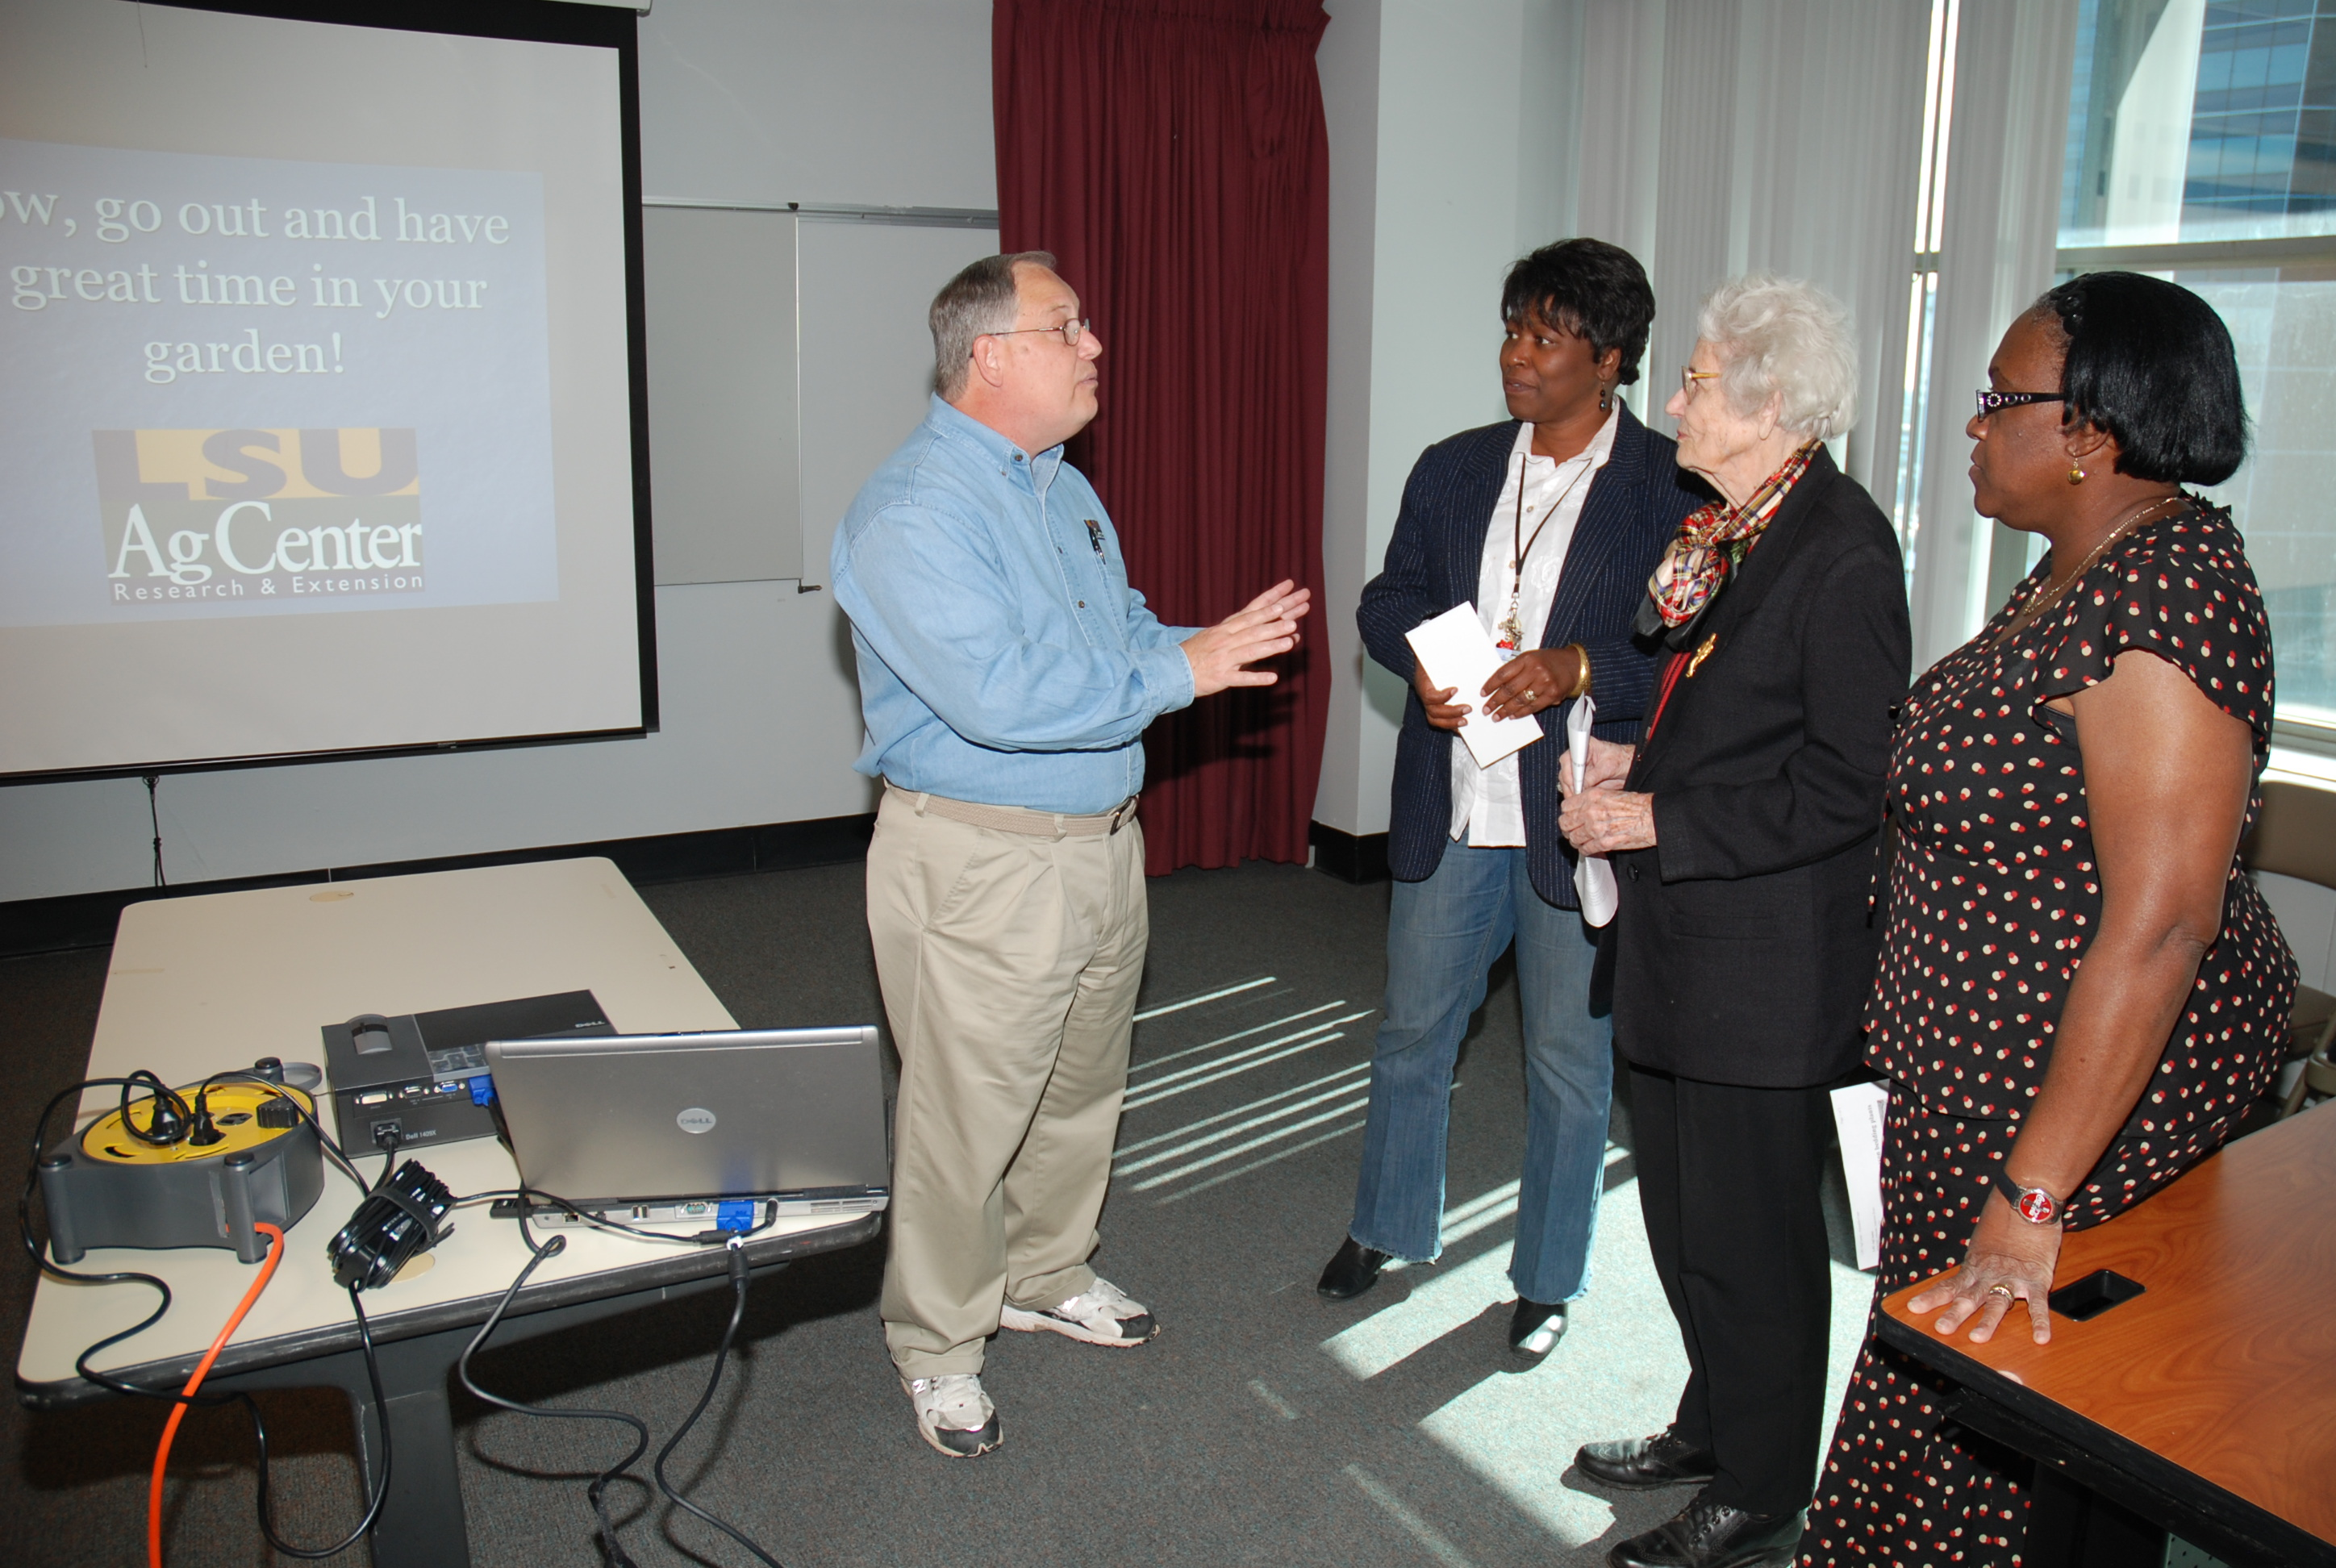 Dan Gill featured at Orleans Parish Lunch and Learn program